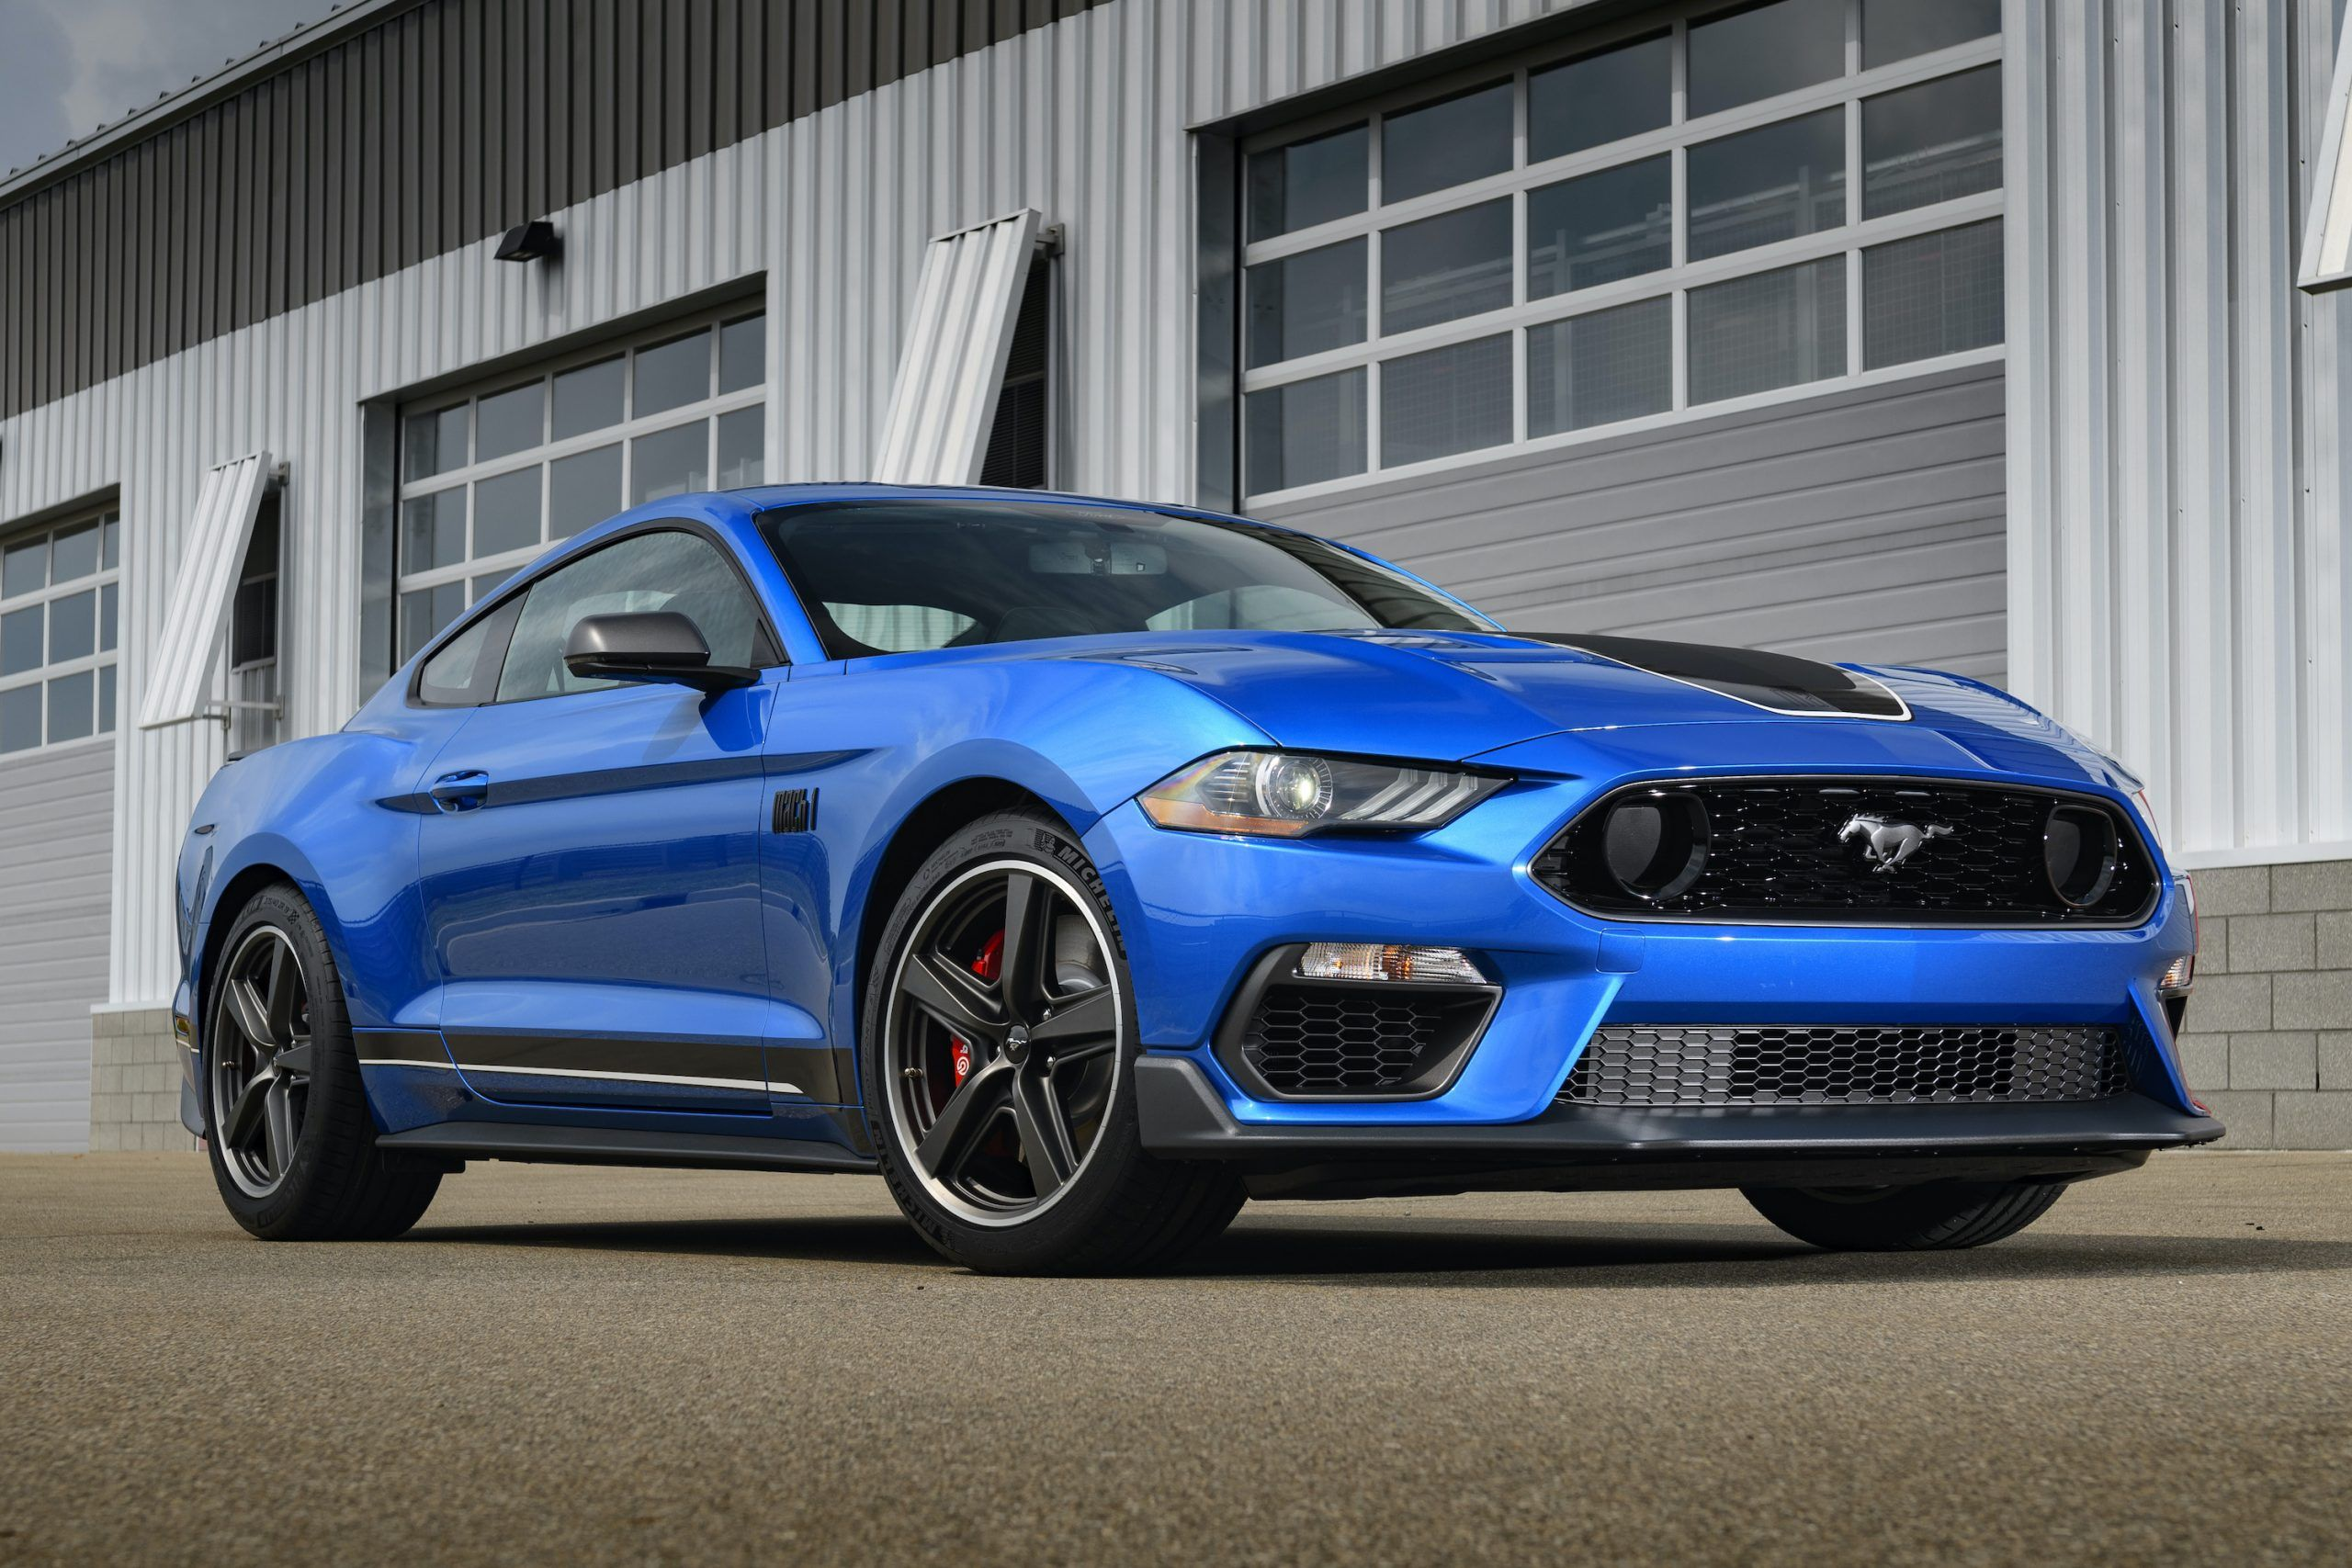 Revealed 2021 Ford Mustang Mach 1 in 2020 Ford mustang